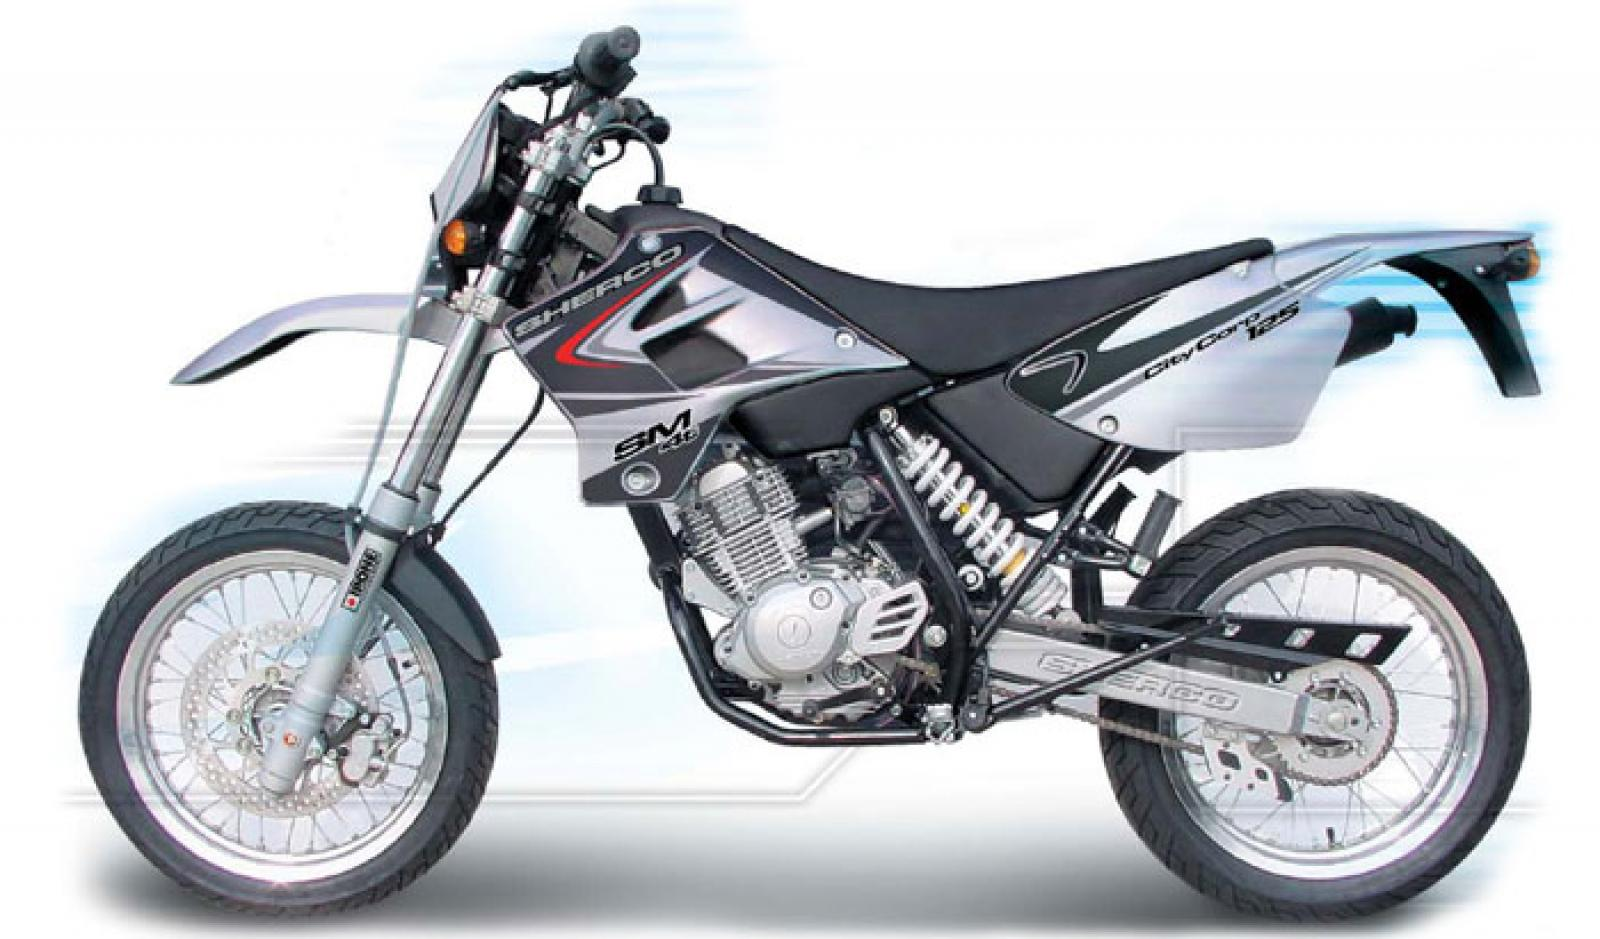 Sherco 125cc Enduro Shark Replica 2007 images #124670